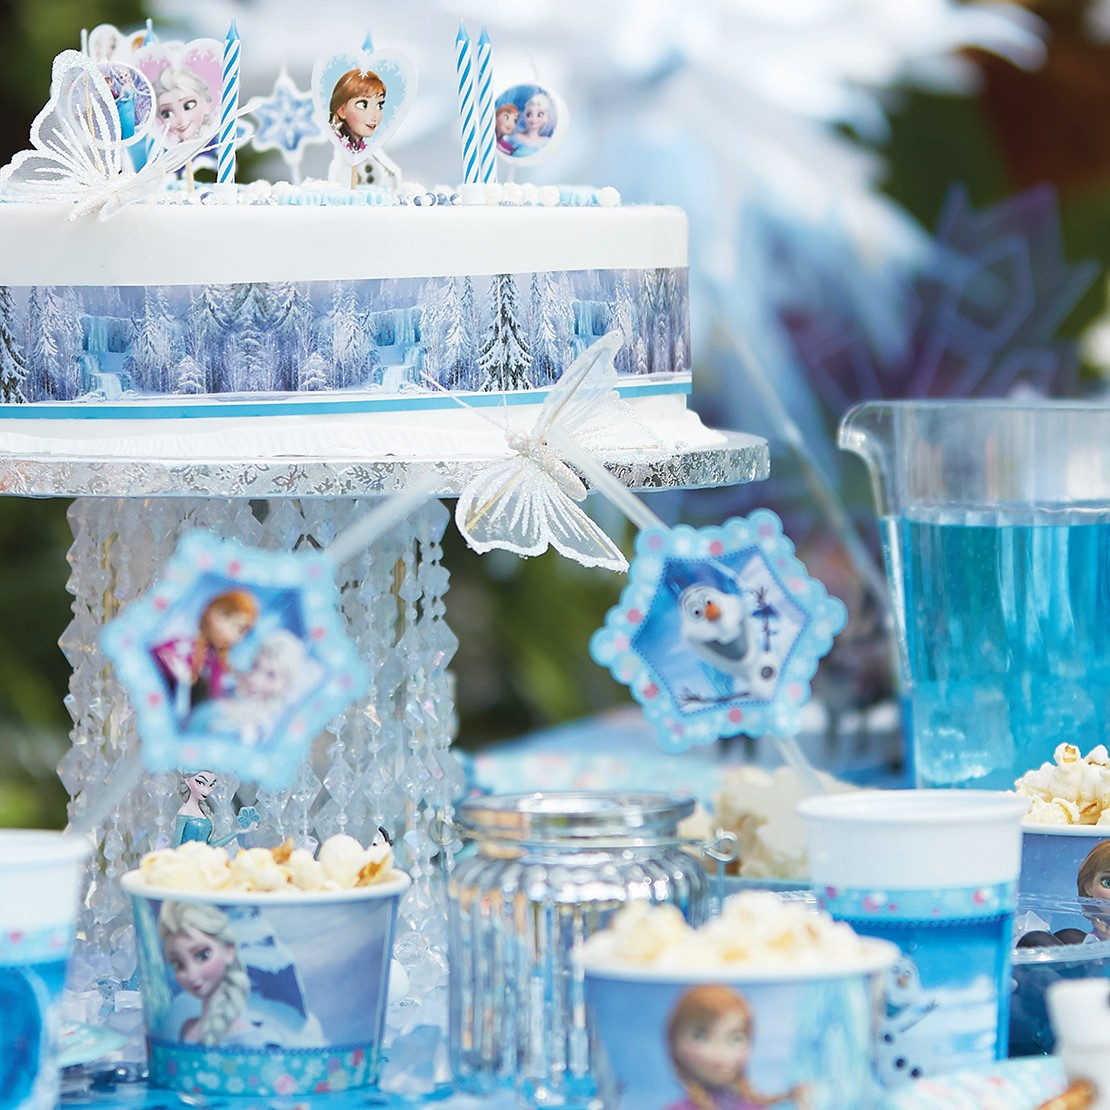 Birthday party planning made easy!